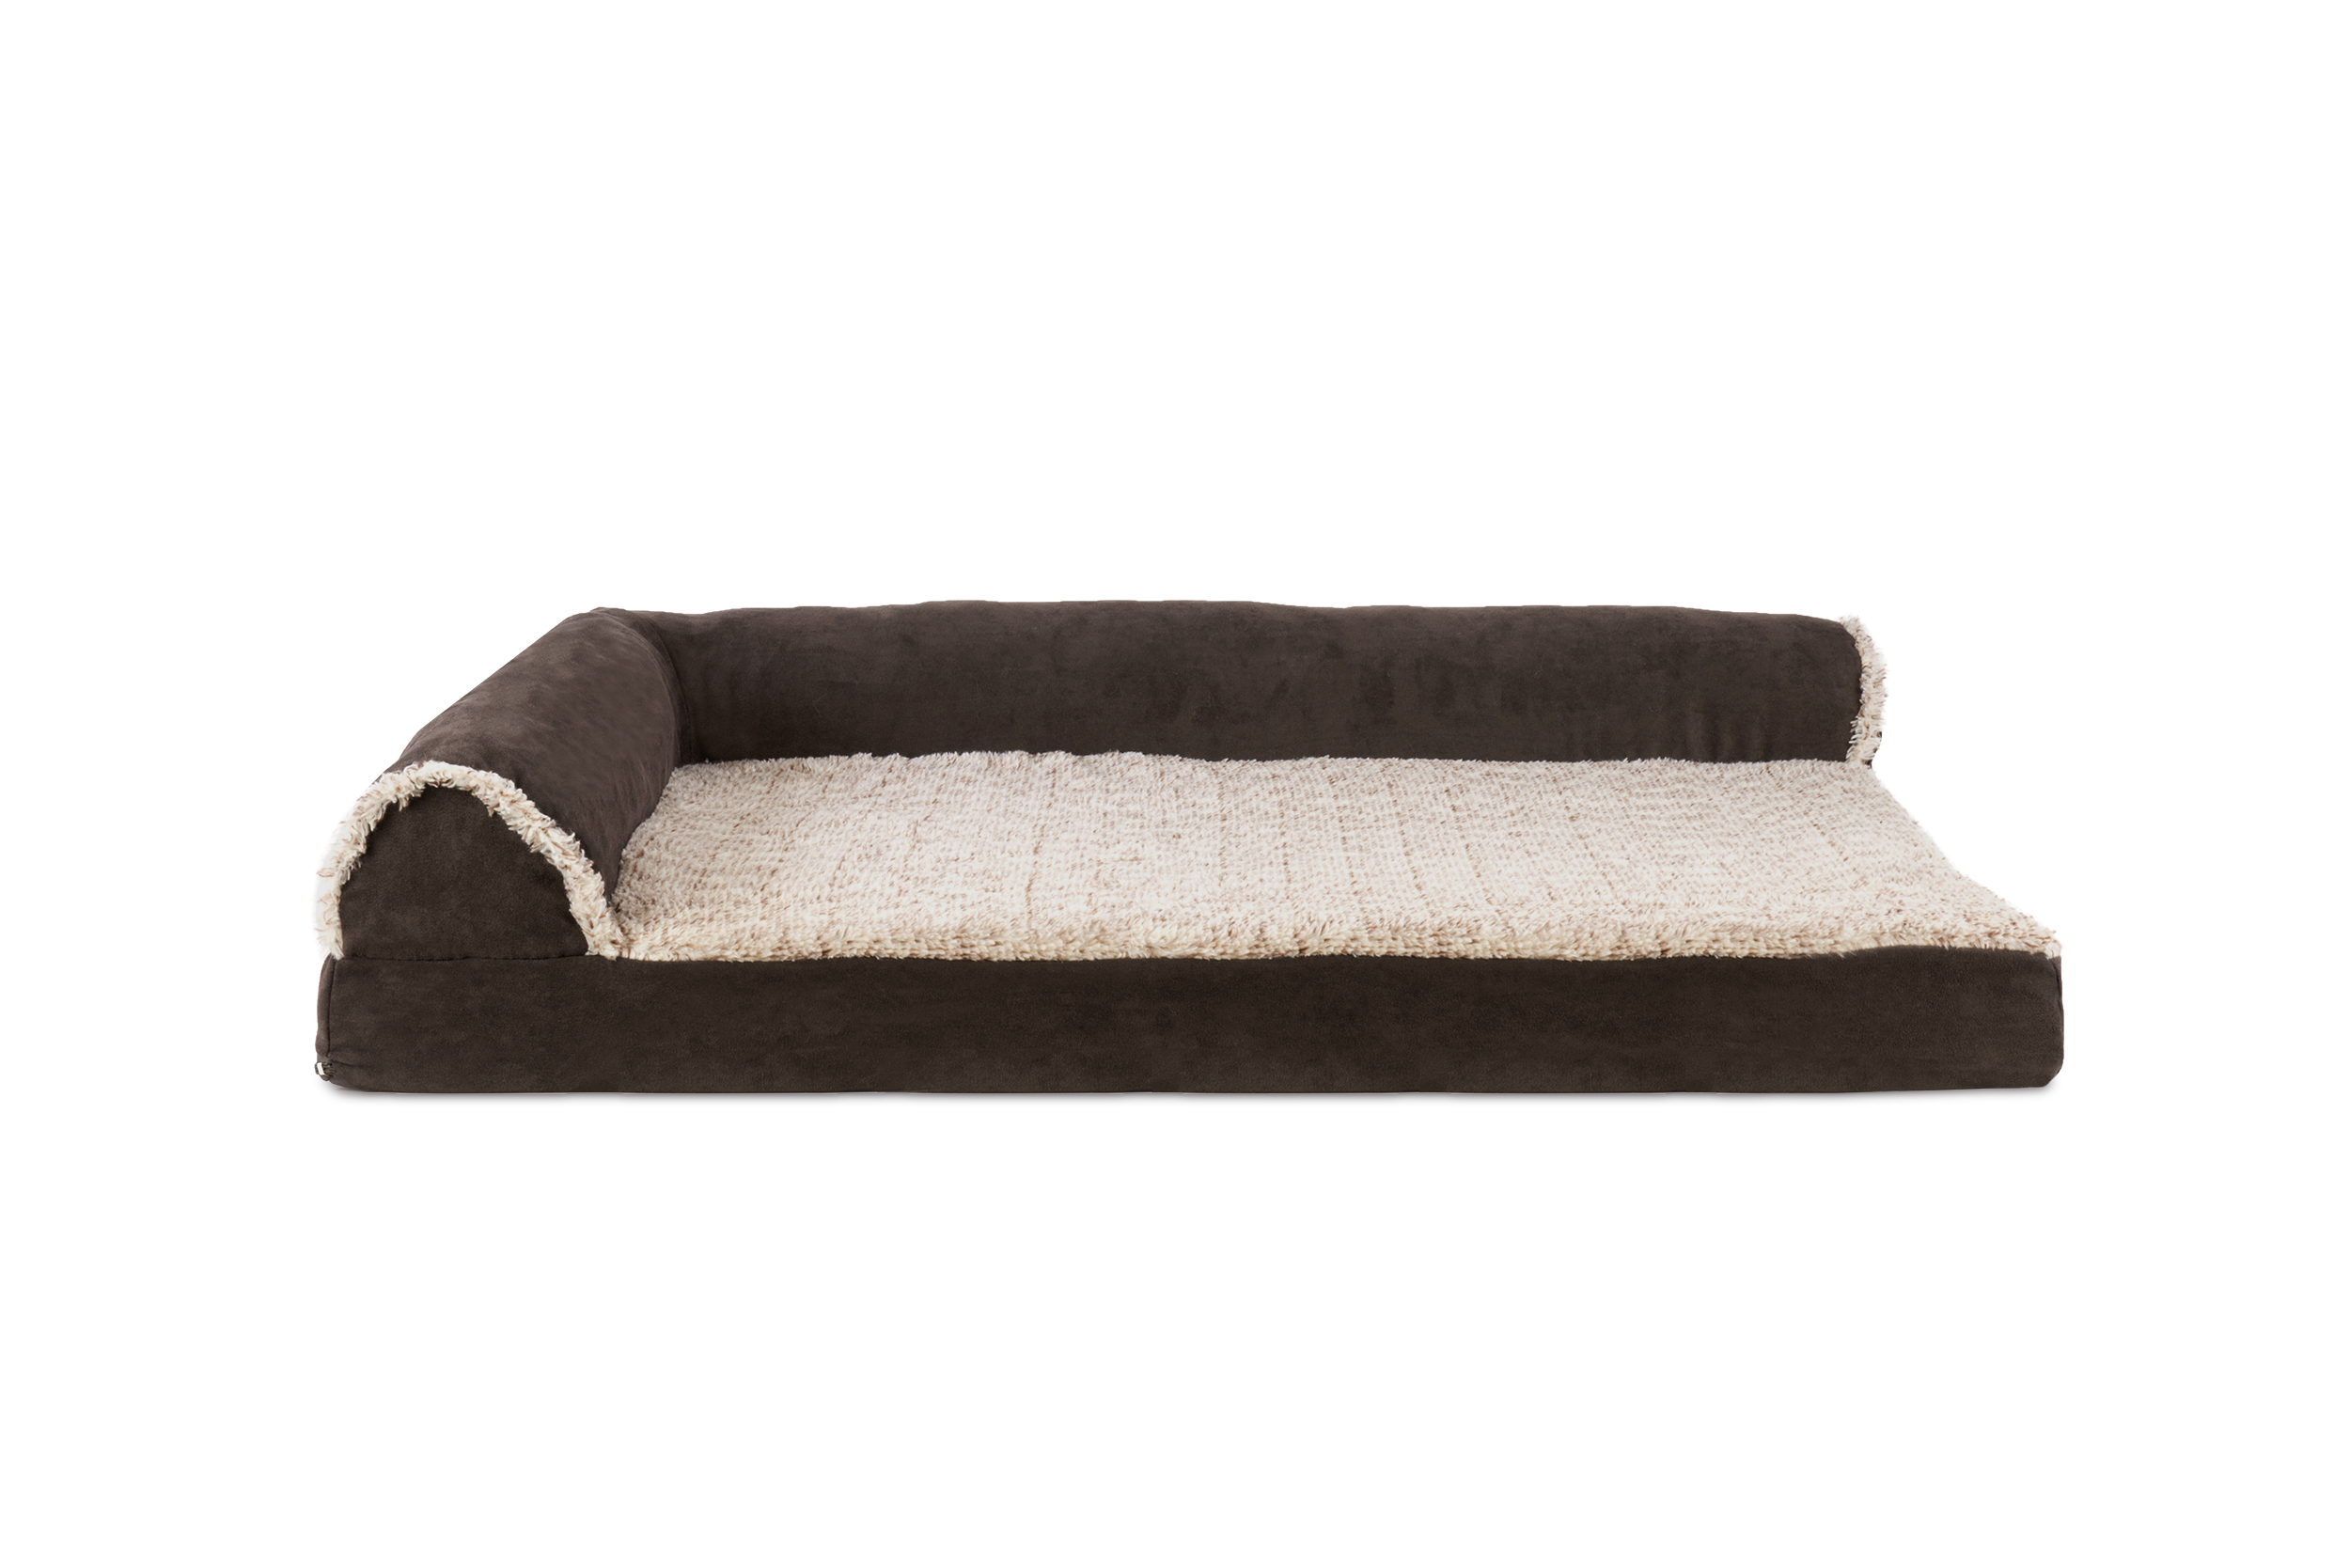 Two Tone Faux Fur & Suede Deluxe Chaise Lounge Orthopedic Sofa Pet